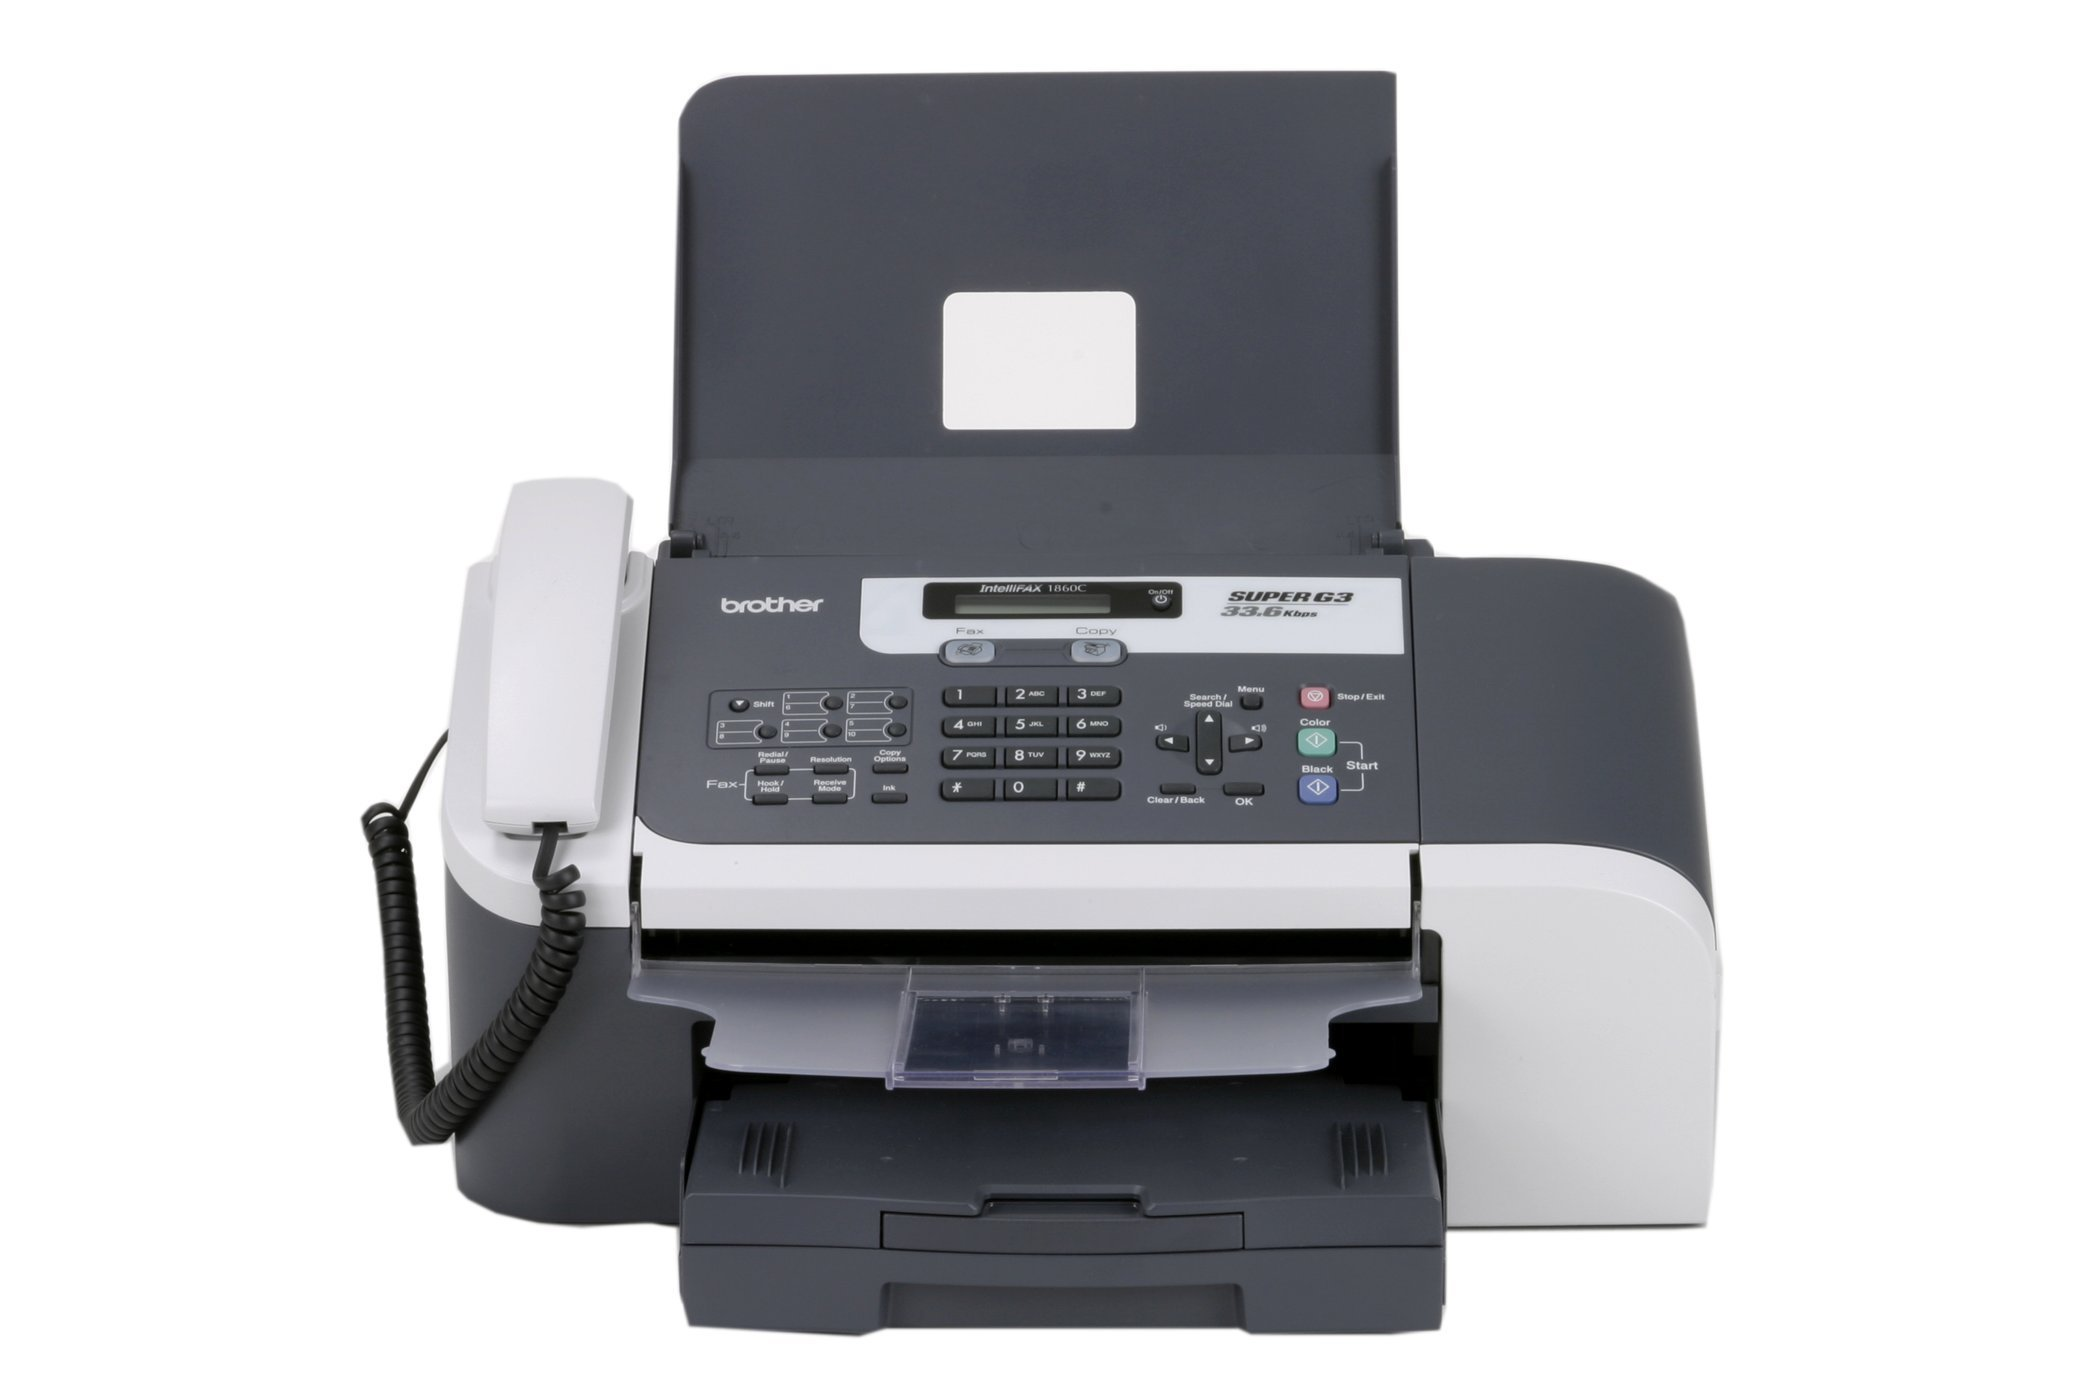 Brother FAX-1860c Color Inkjet Fax, Copier, Phone by Brother